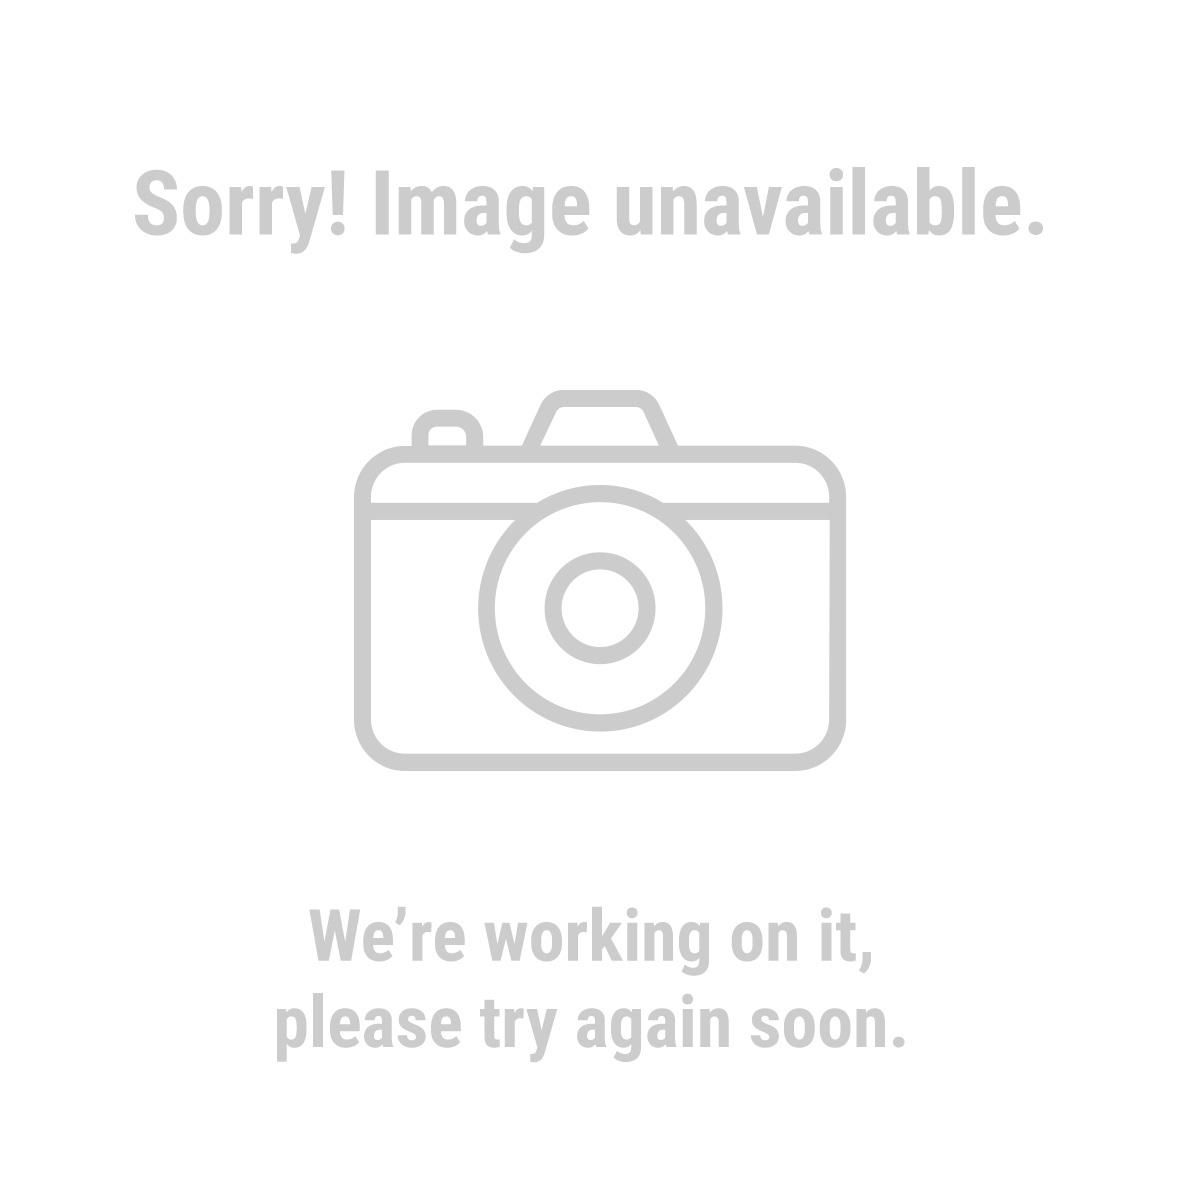 Cen-Tech® 60695 High Resolution Digital Inspection Camera with Recorder